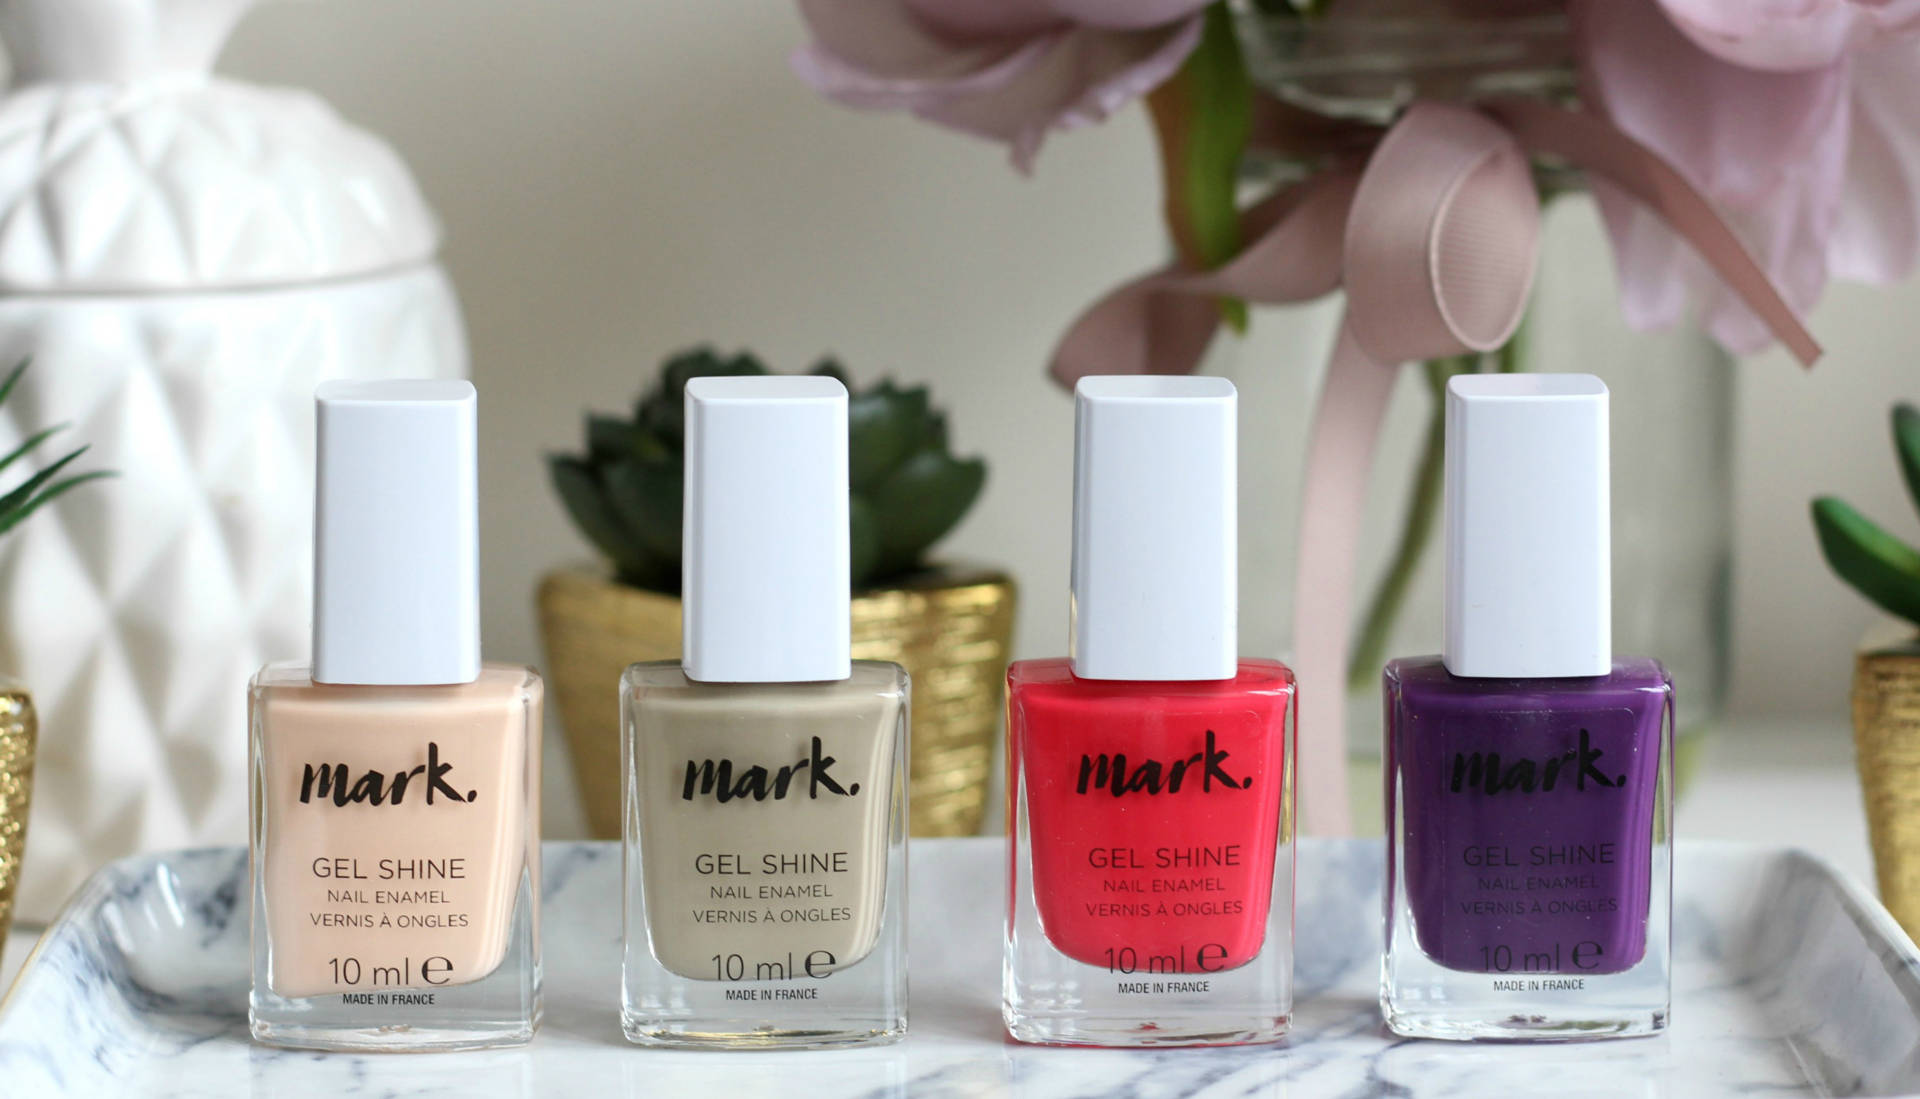 #MakeYourMark with these new nail releases from Avon